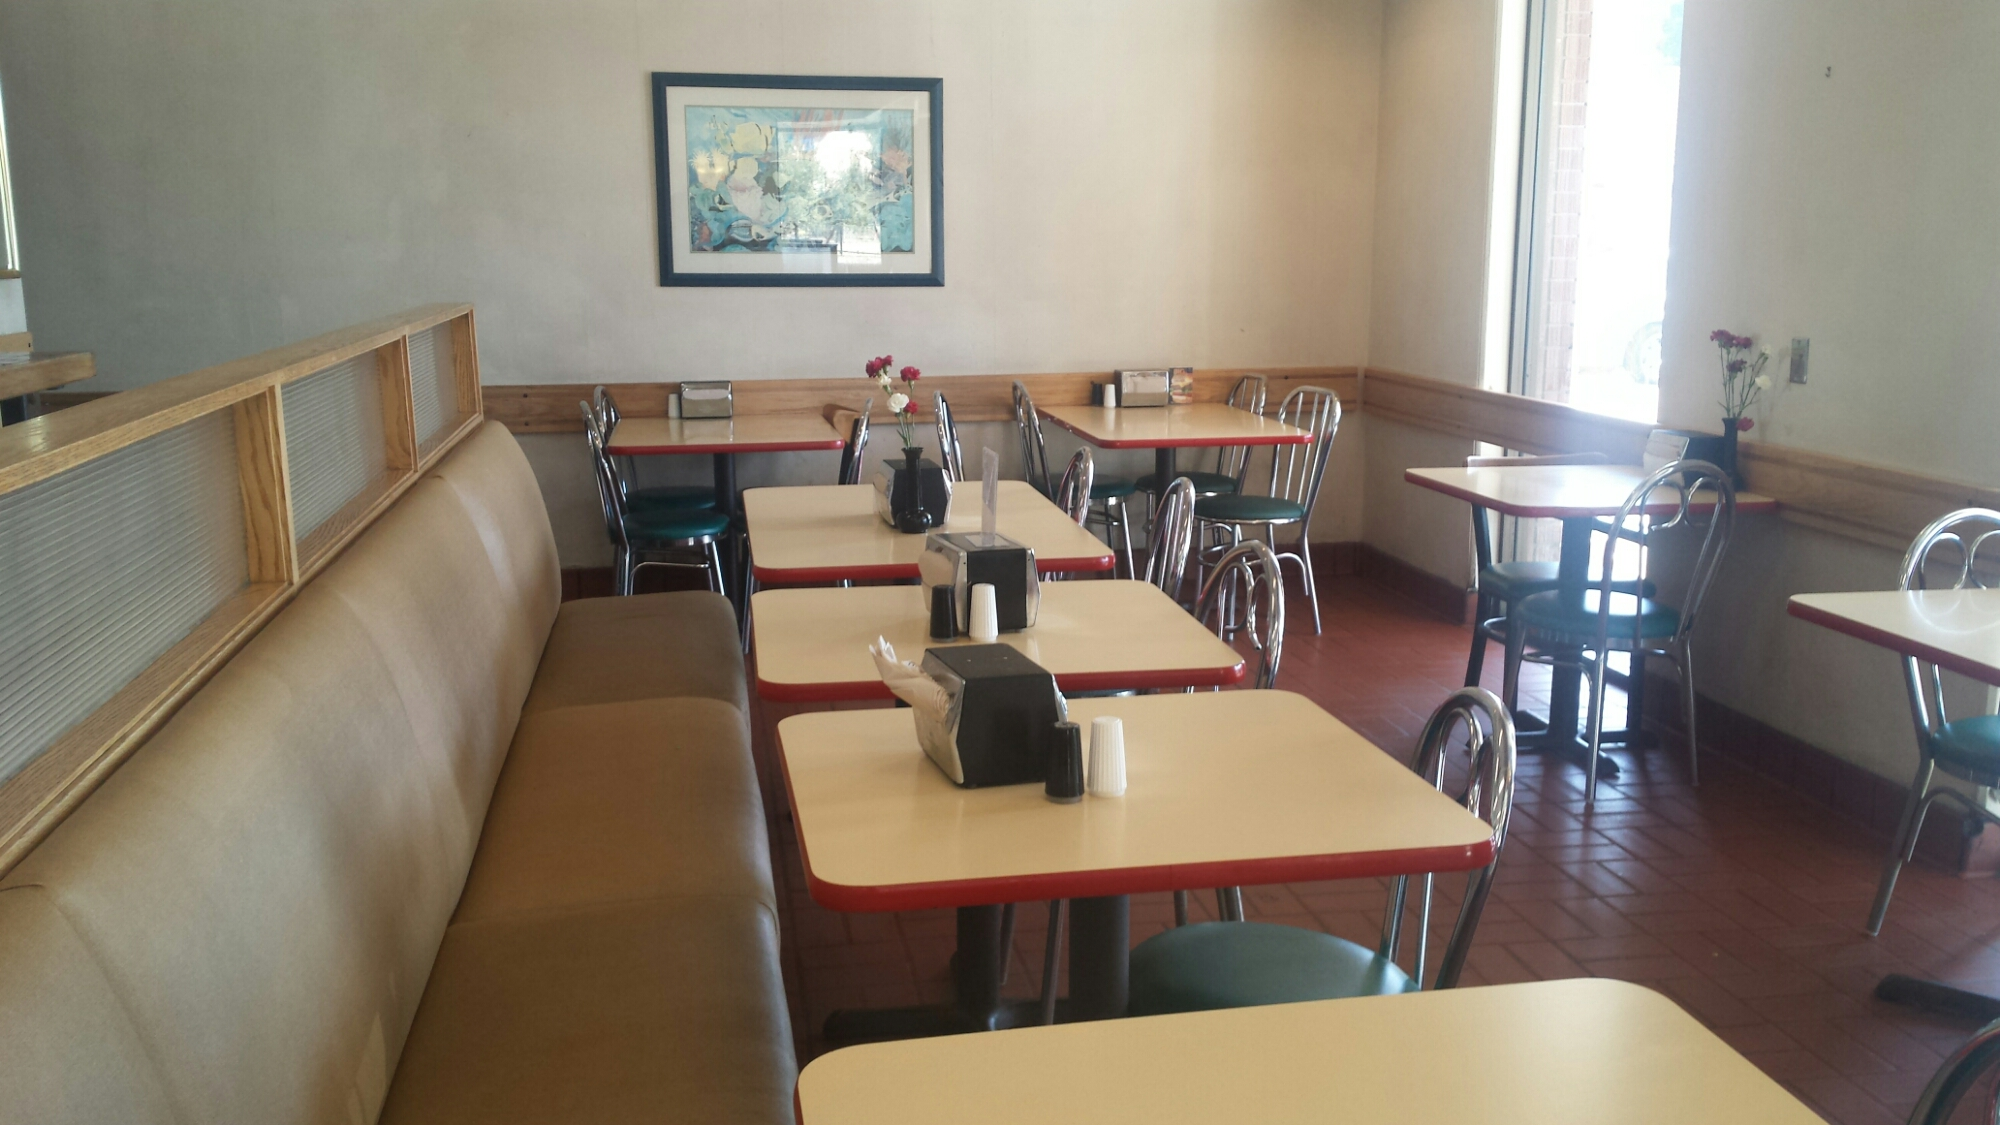 Family Oriented Diner environment